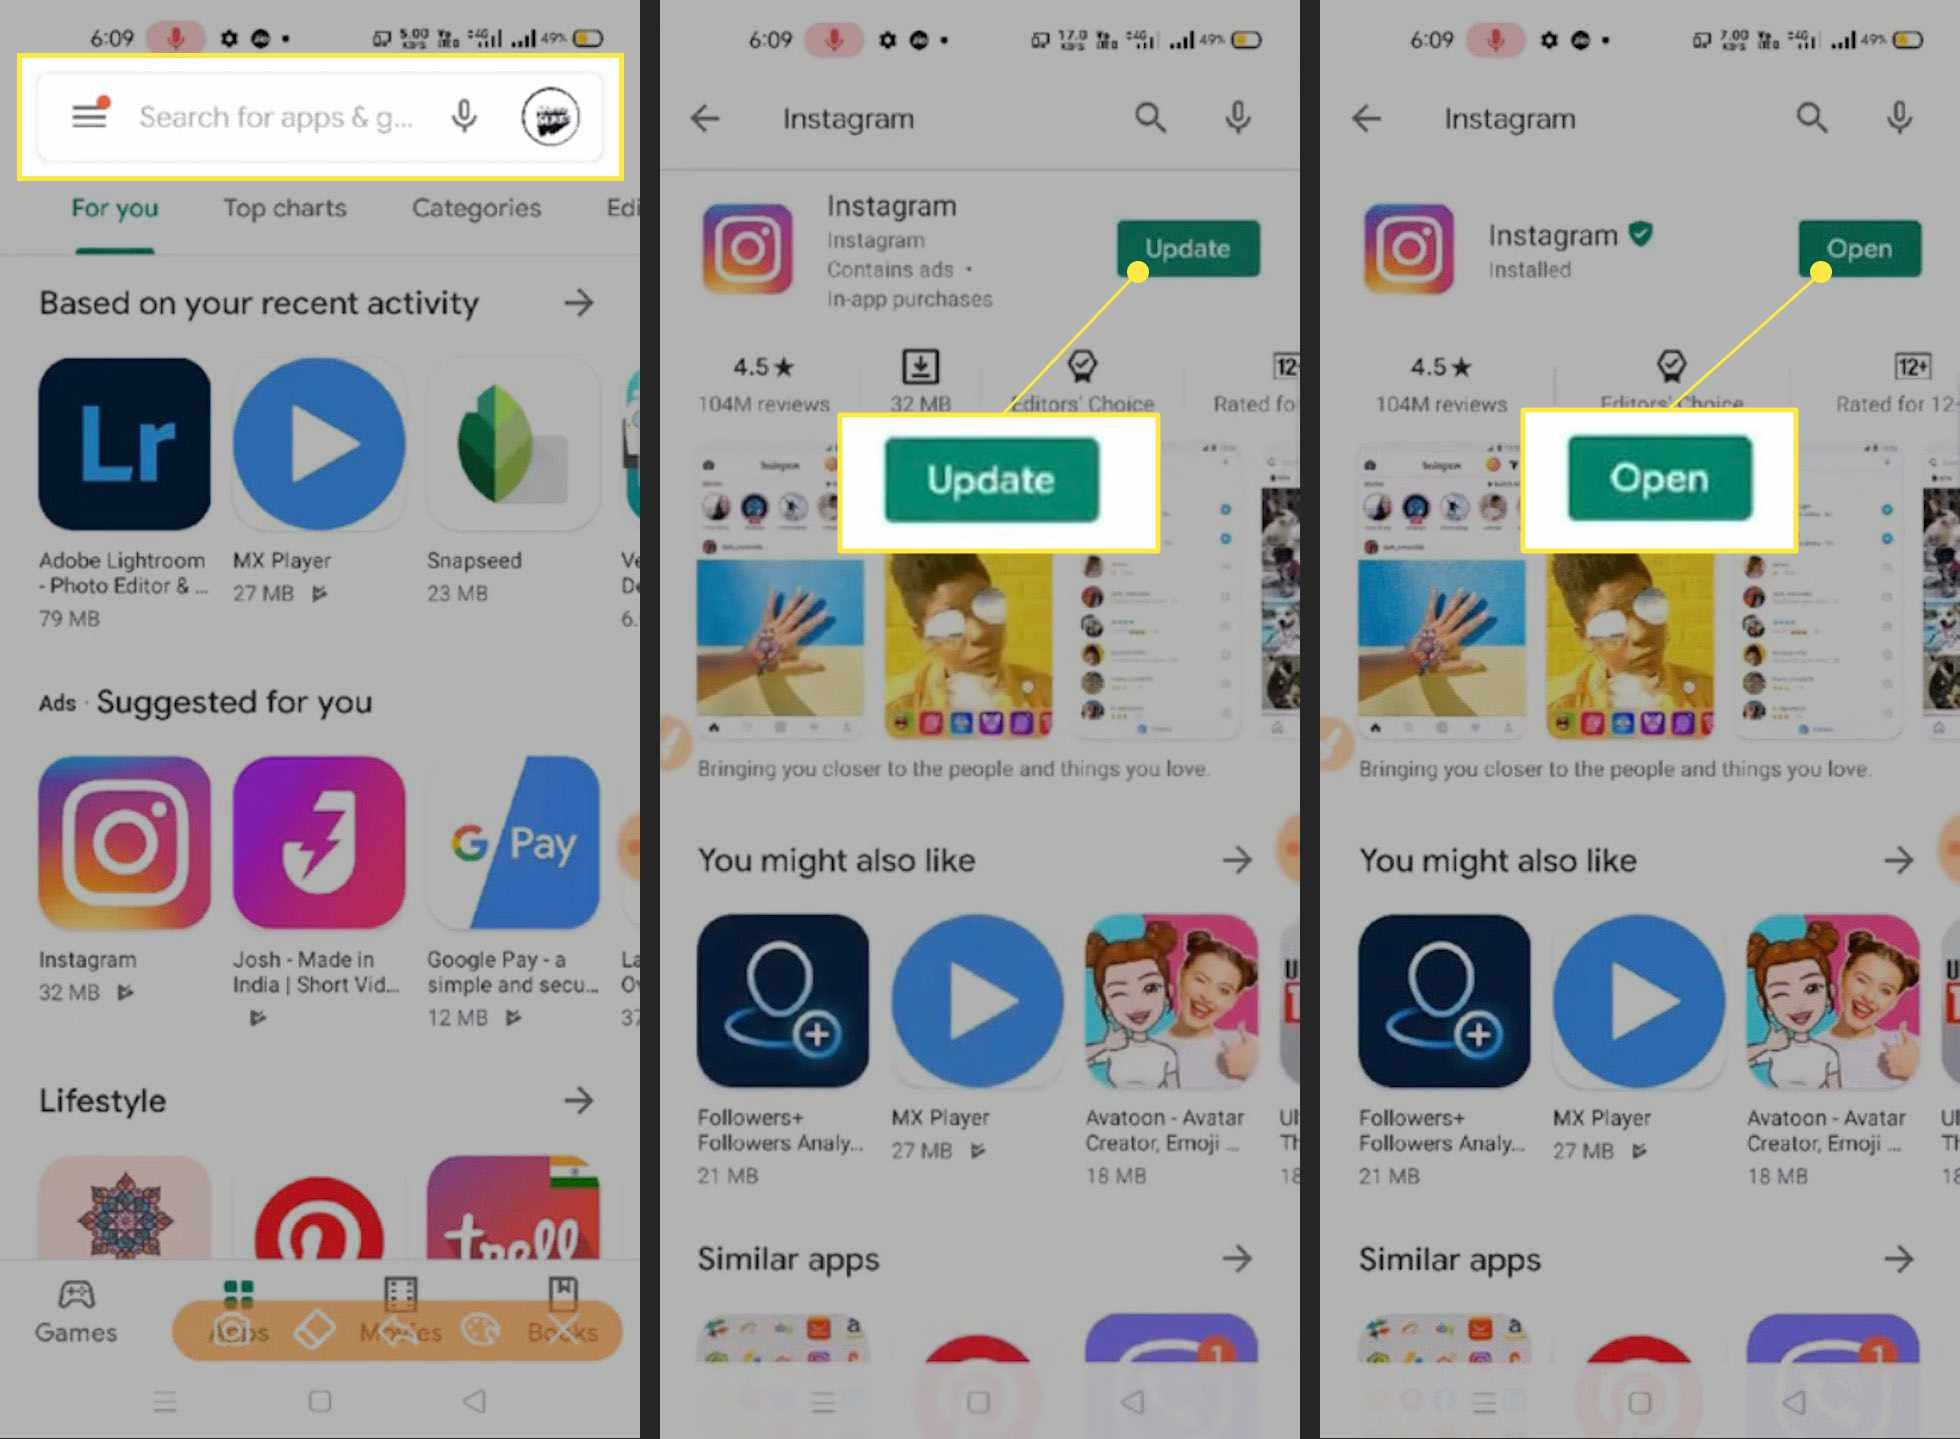 Steps to update Instagram app on Android with the search field,